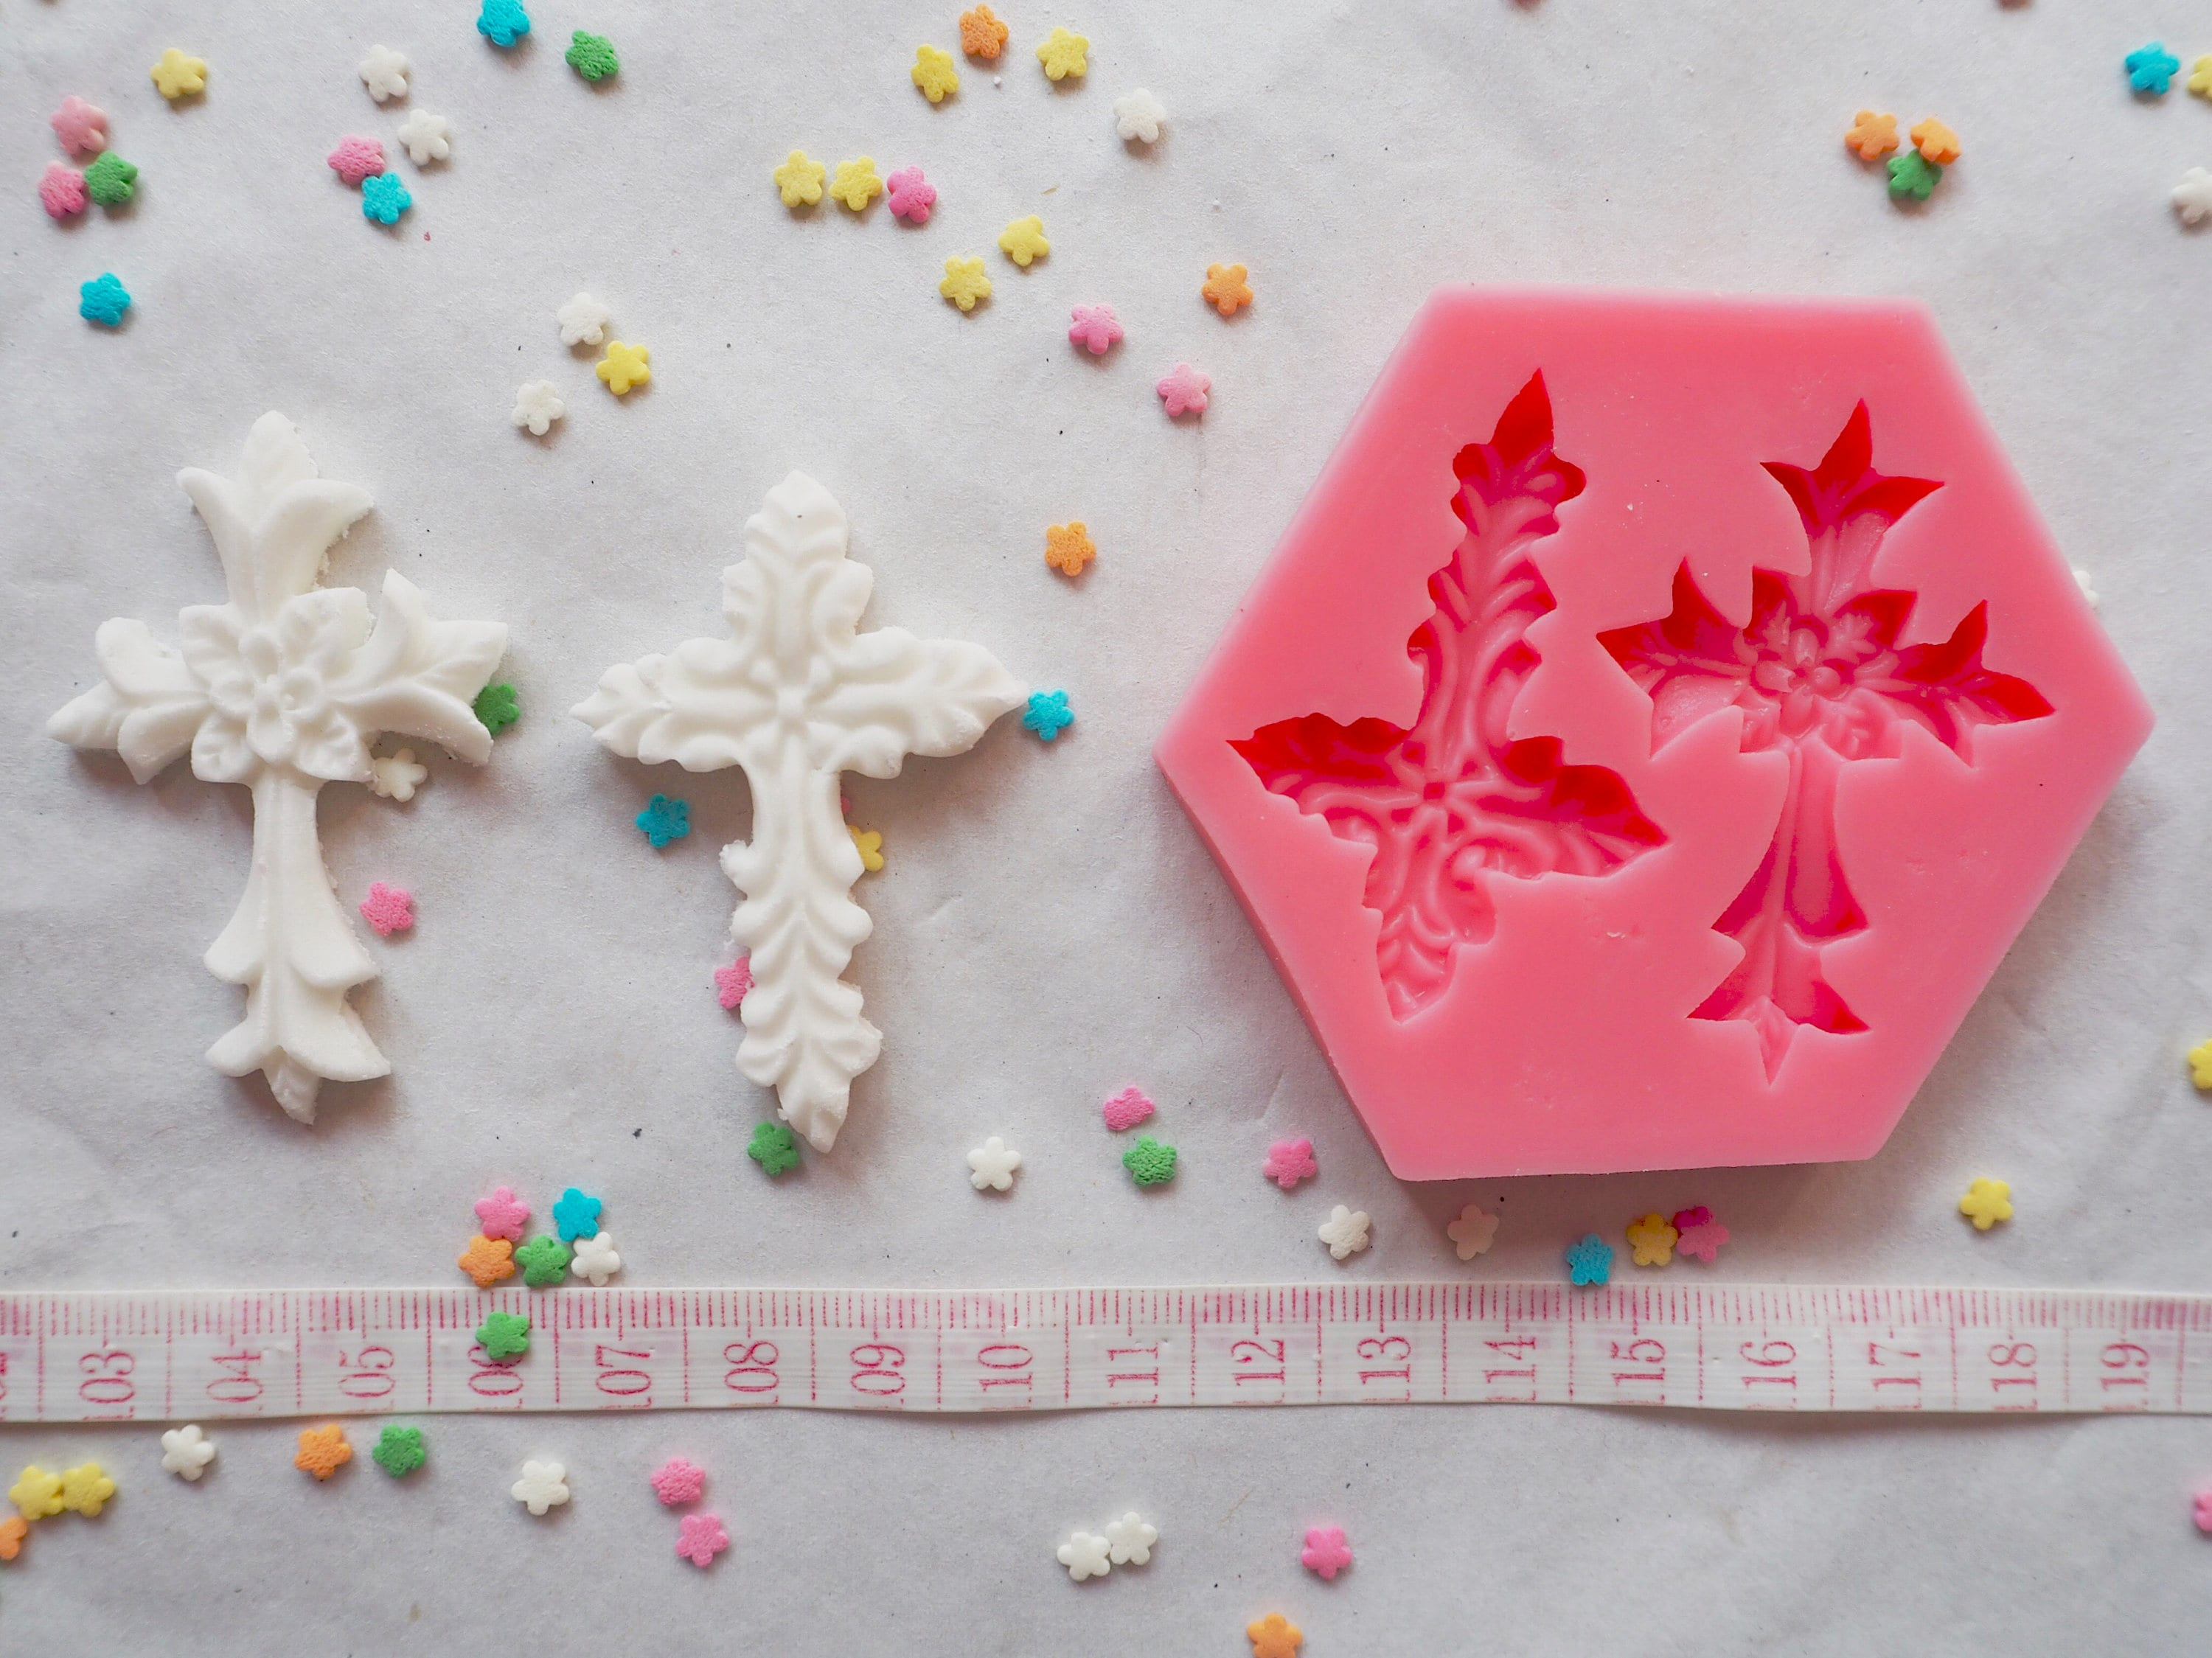 Fancy Cross Silicone Mould Mold Cake decorating Cakes Cookies